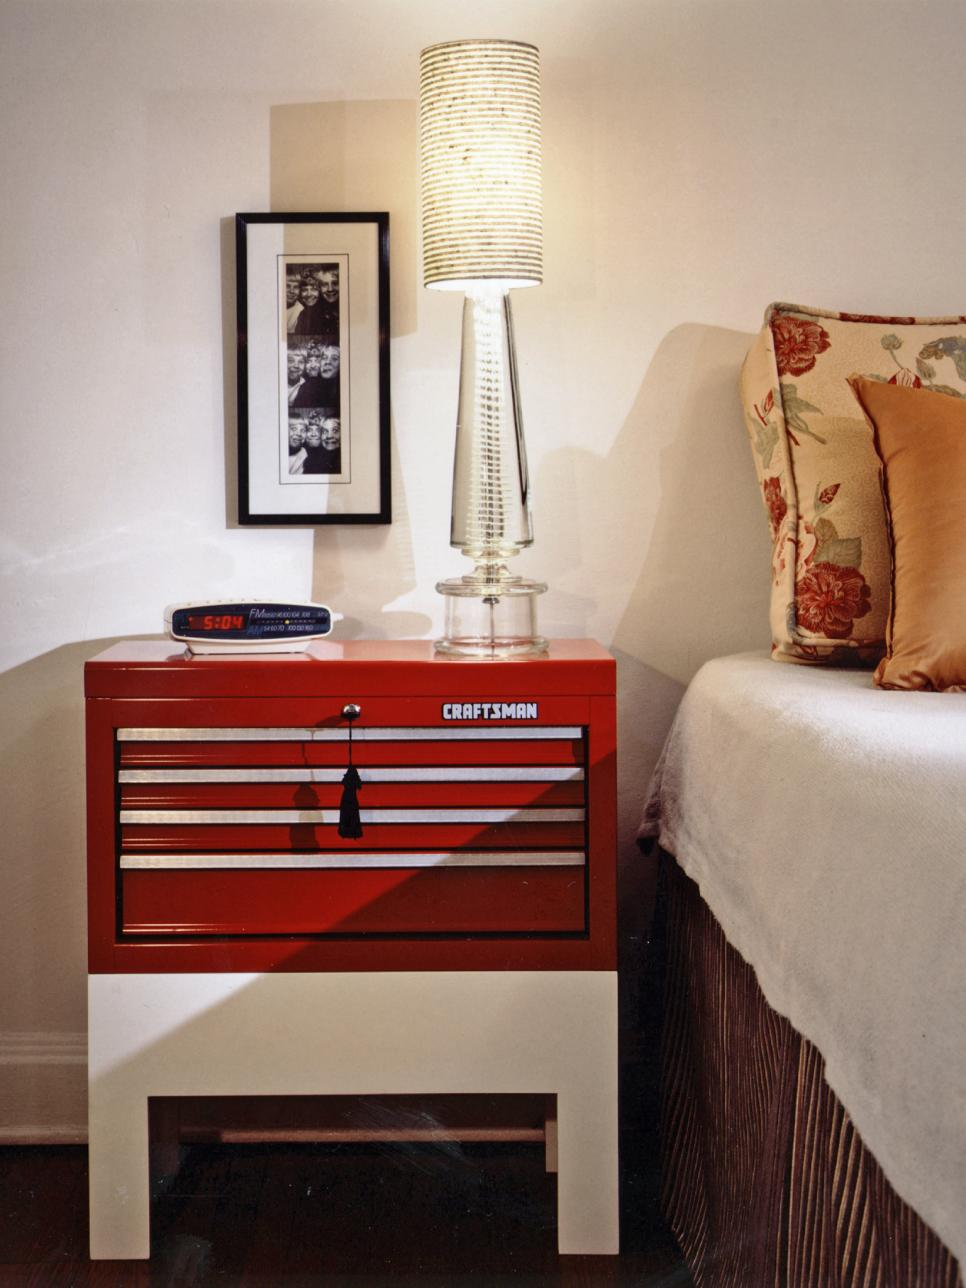 12 ideas for nightstand alternatives diy - Bedroom Table Ideas